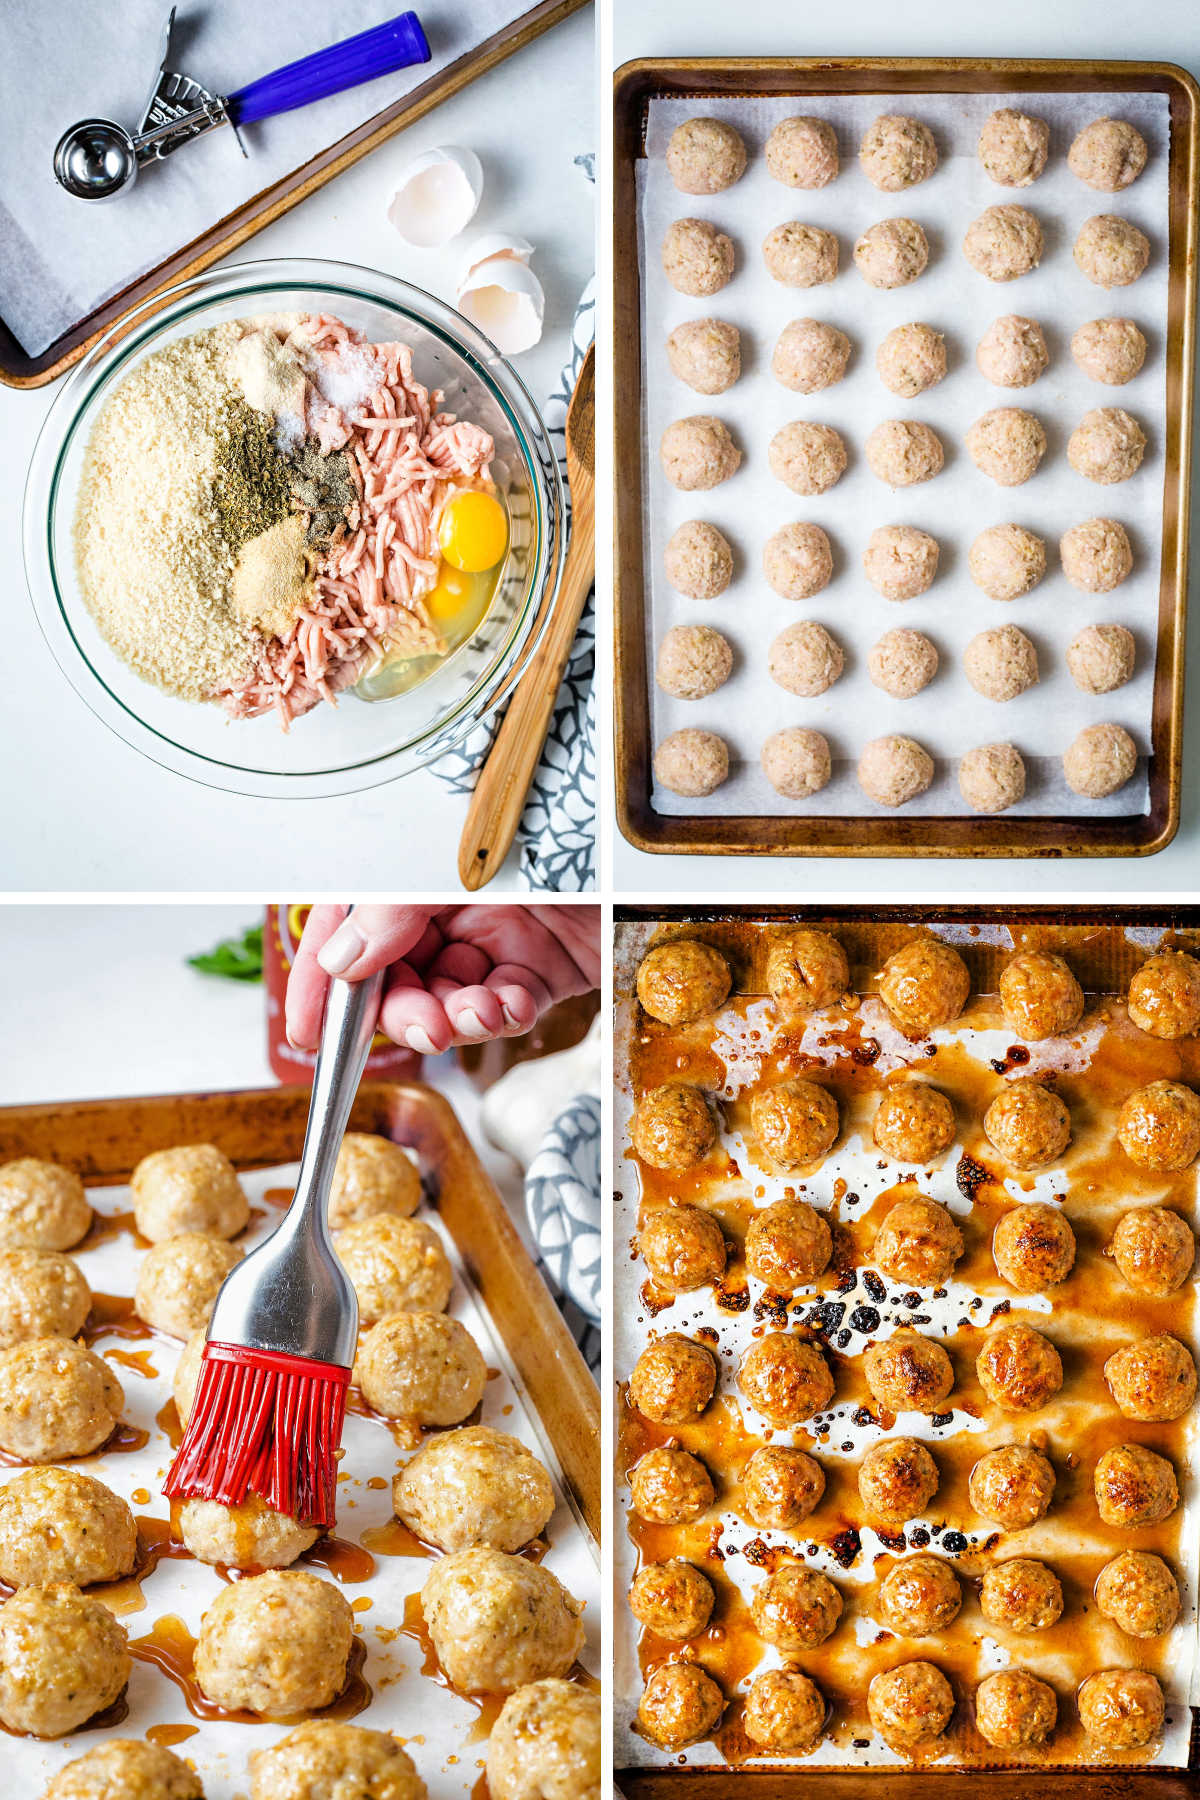 process steps for making chicken meatballs: combine ingredients; roll into balls and place on baking sheet; baste with glaze; baked meatballs on baking sheet..